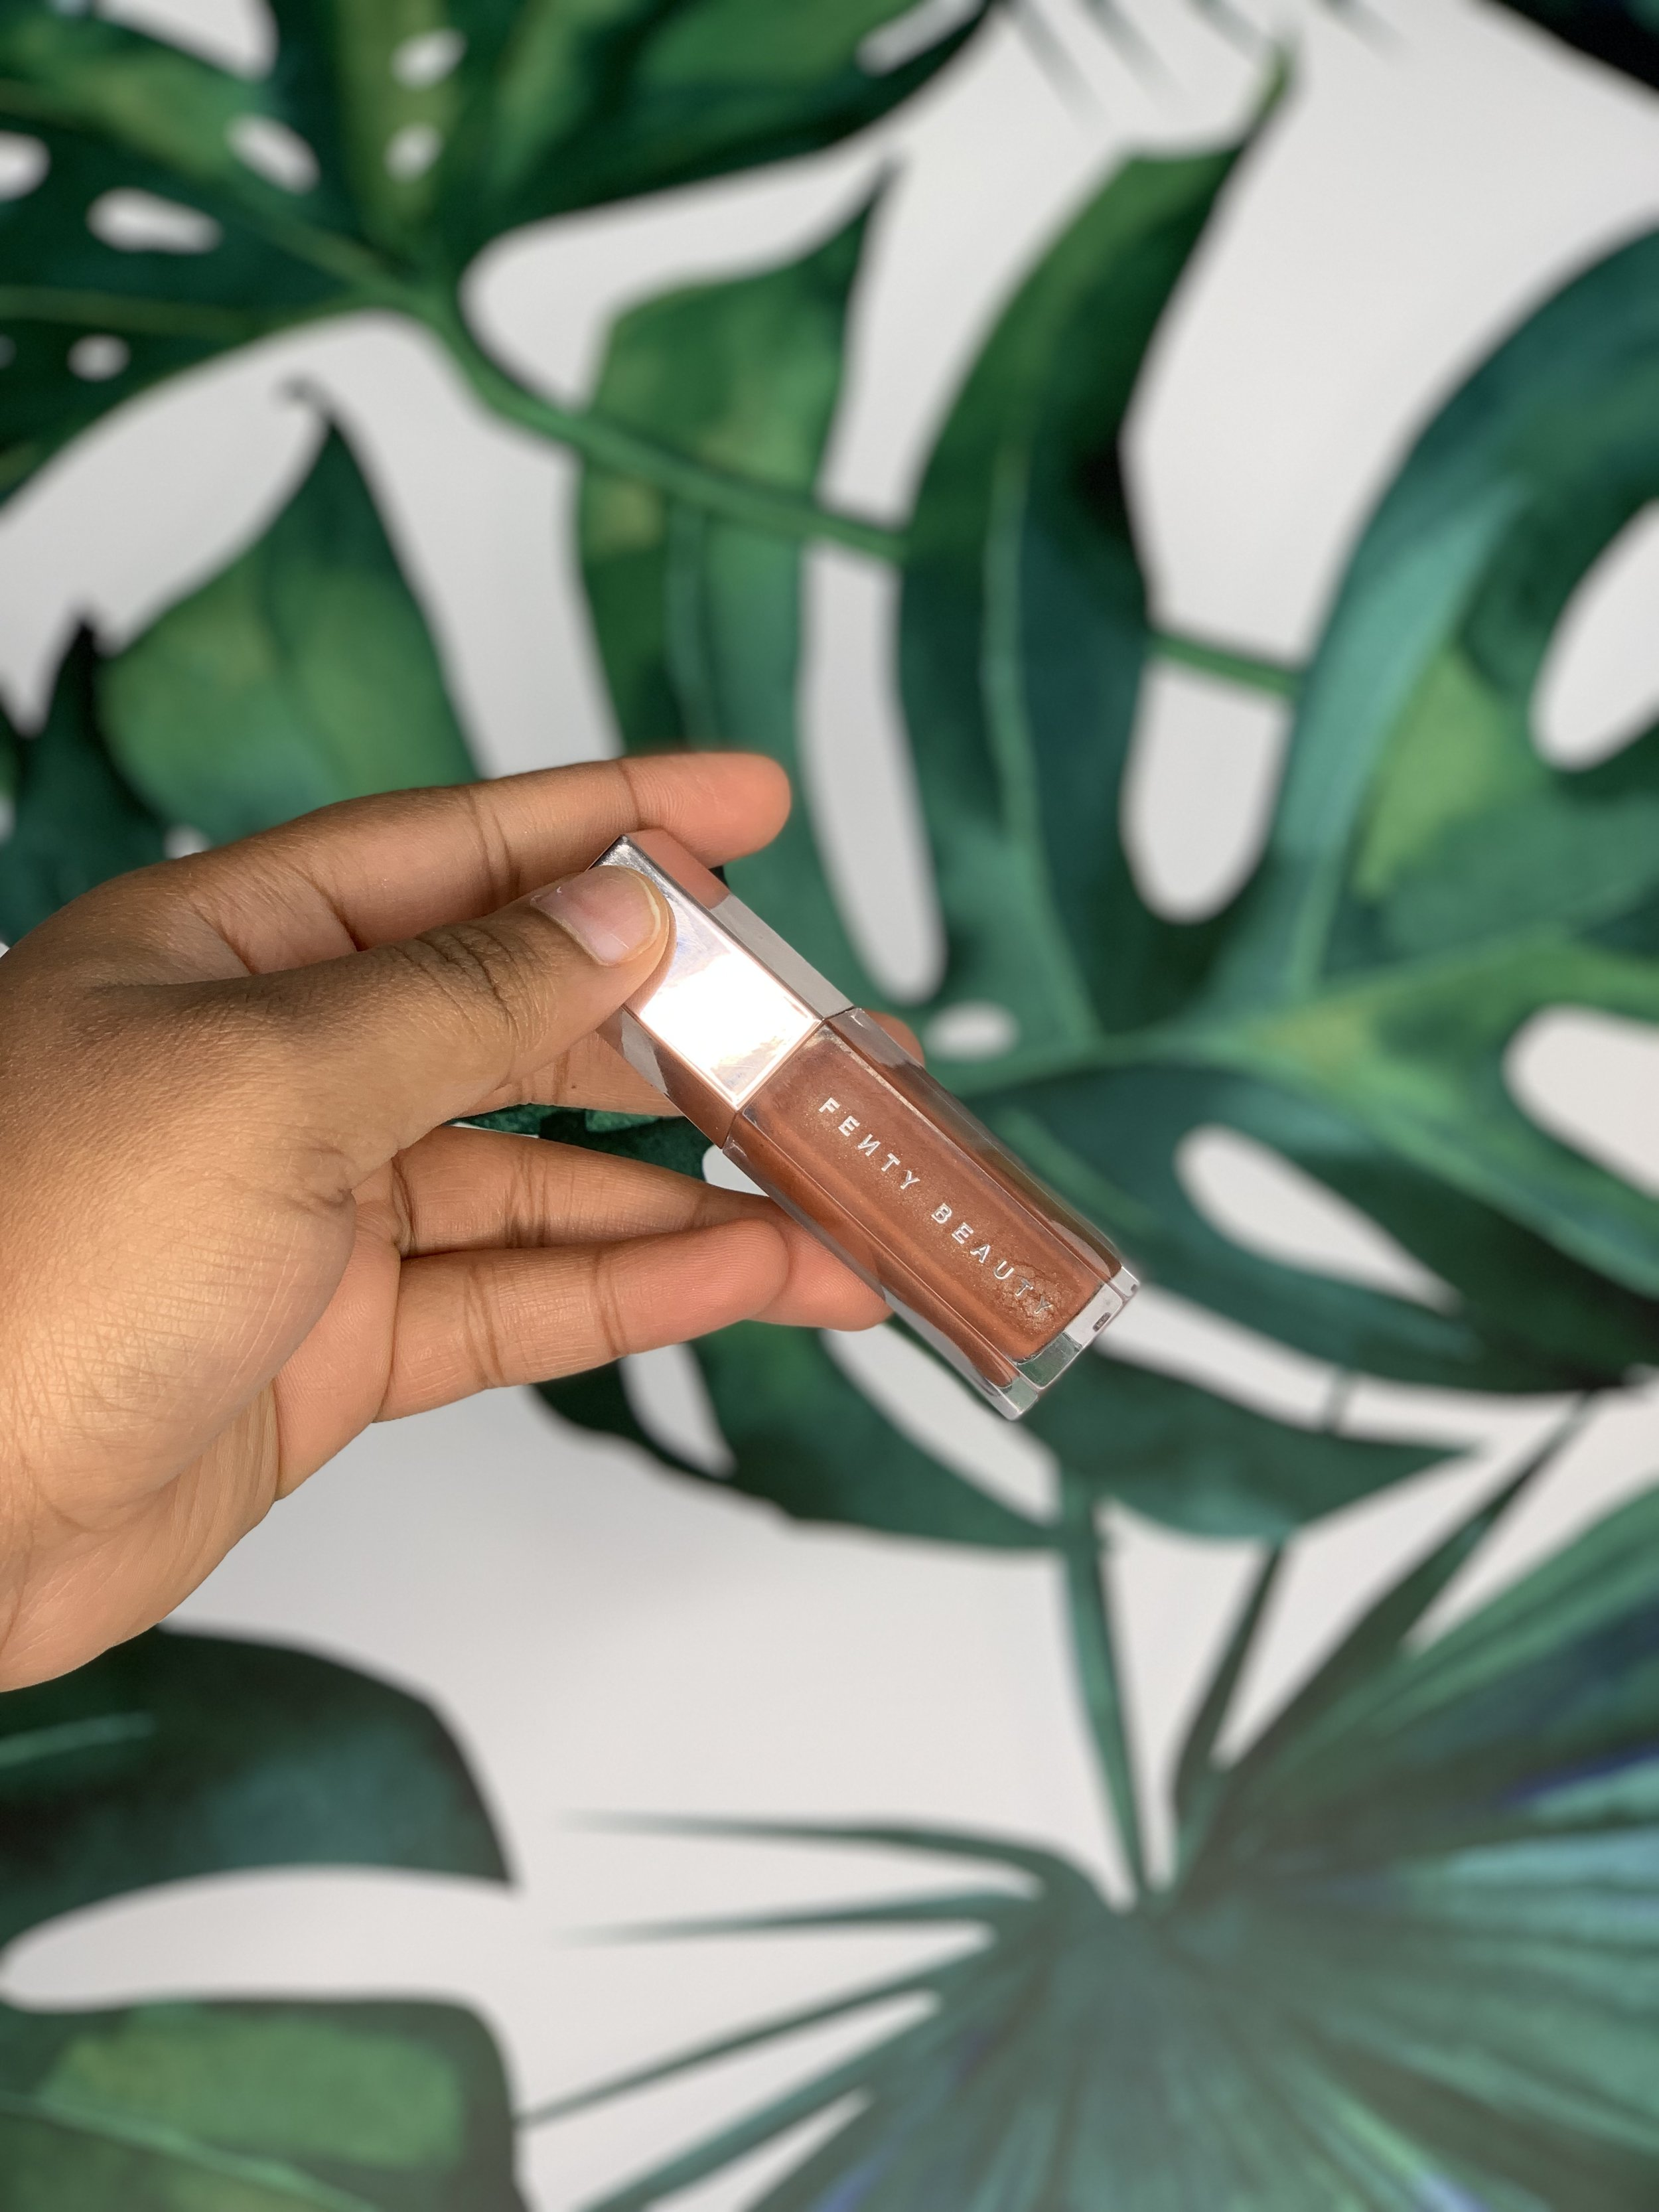 Lips - Lastly, LIPS. This is my favorite Fenty Beauty product ever. Since it launched, I haven't used any other lipgloss. I love the Fenty Gloss Bomb very much. It's a perfect shade and I basically use it everyday; even when I'm not wearing makeup.